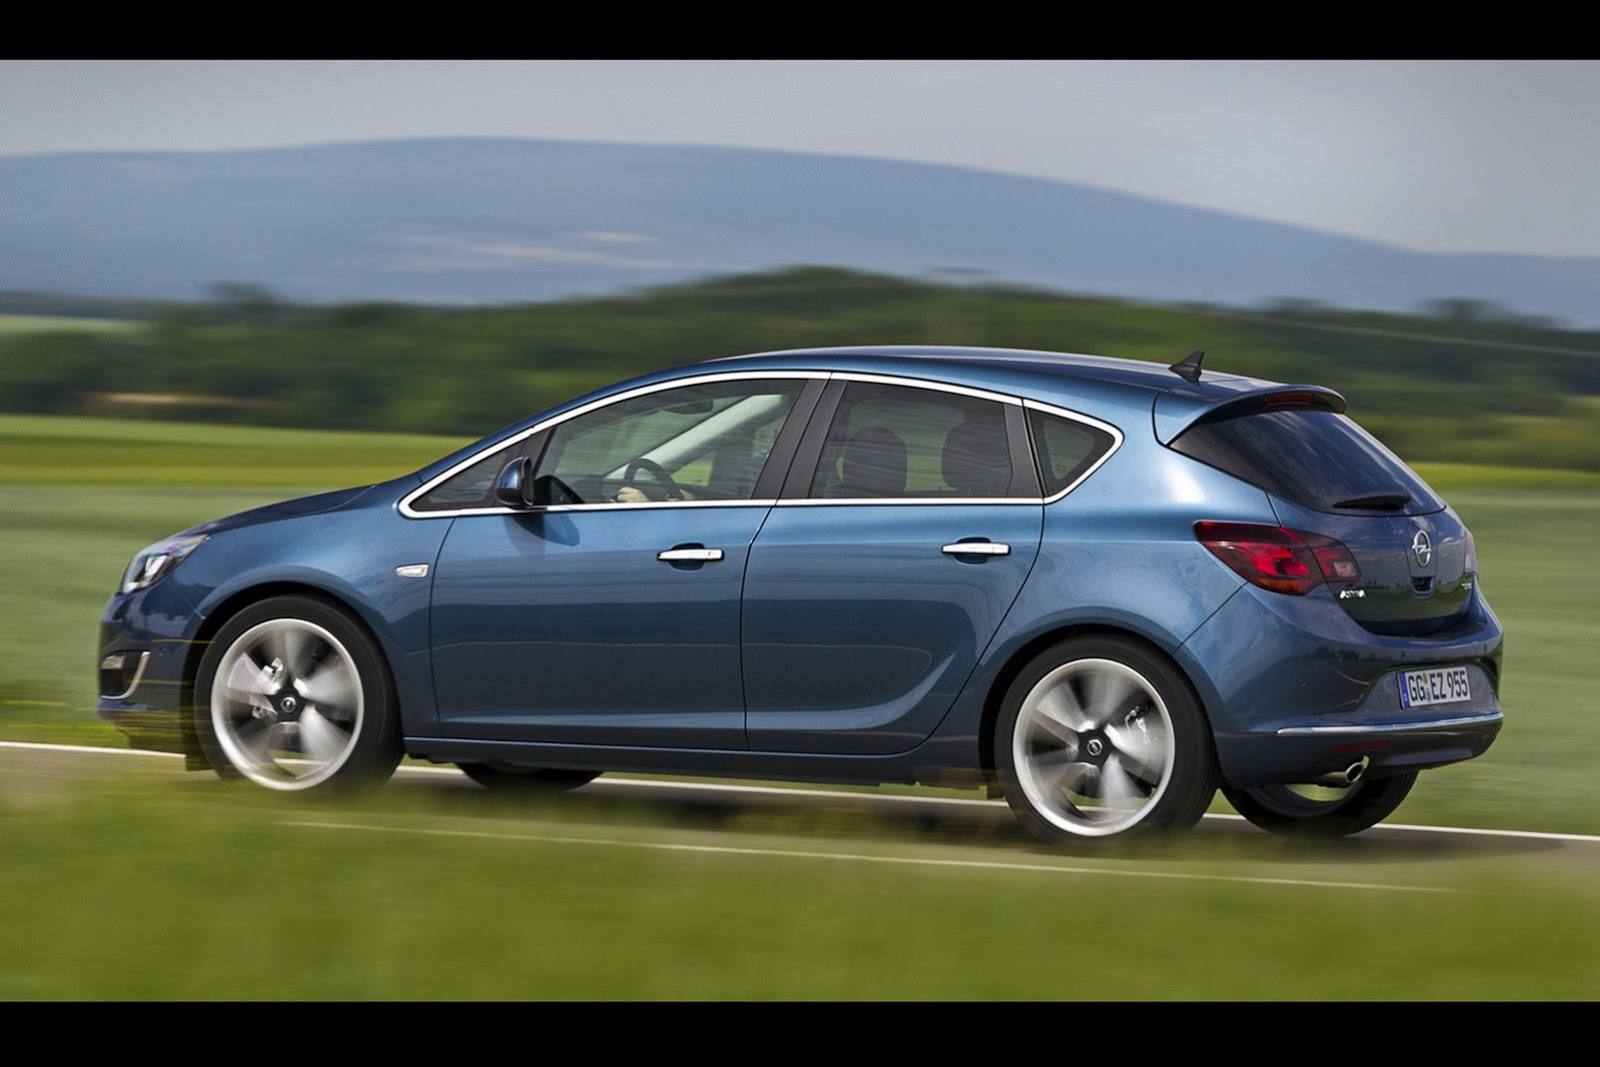 Opel Astra Royal Blue >> Opel Astra Gets New 1.6 SIDI Turbo Engine - autoevolution